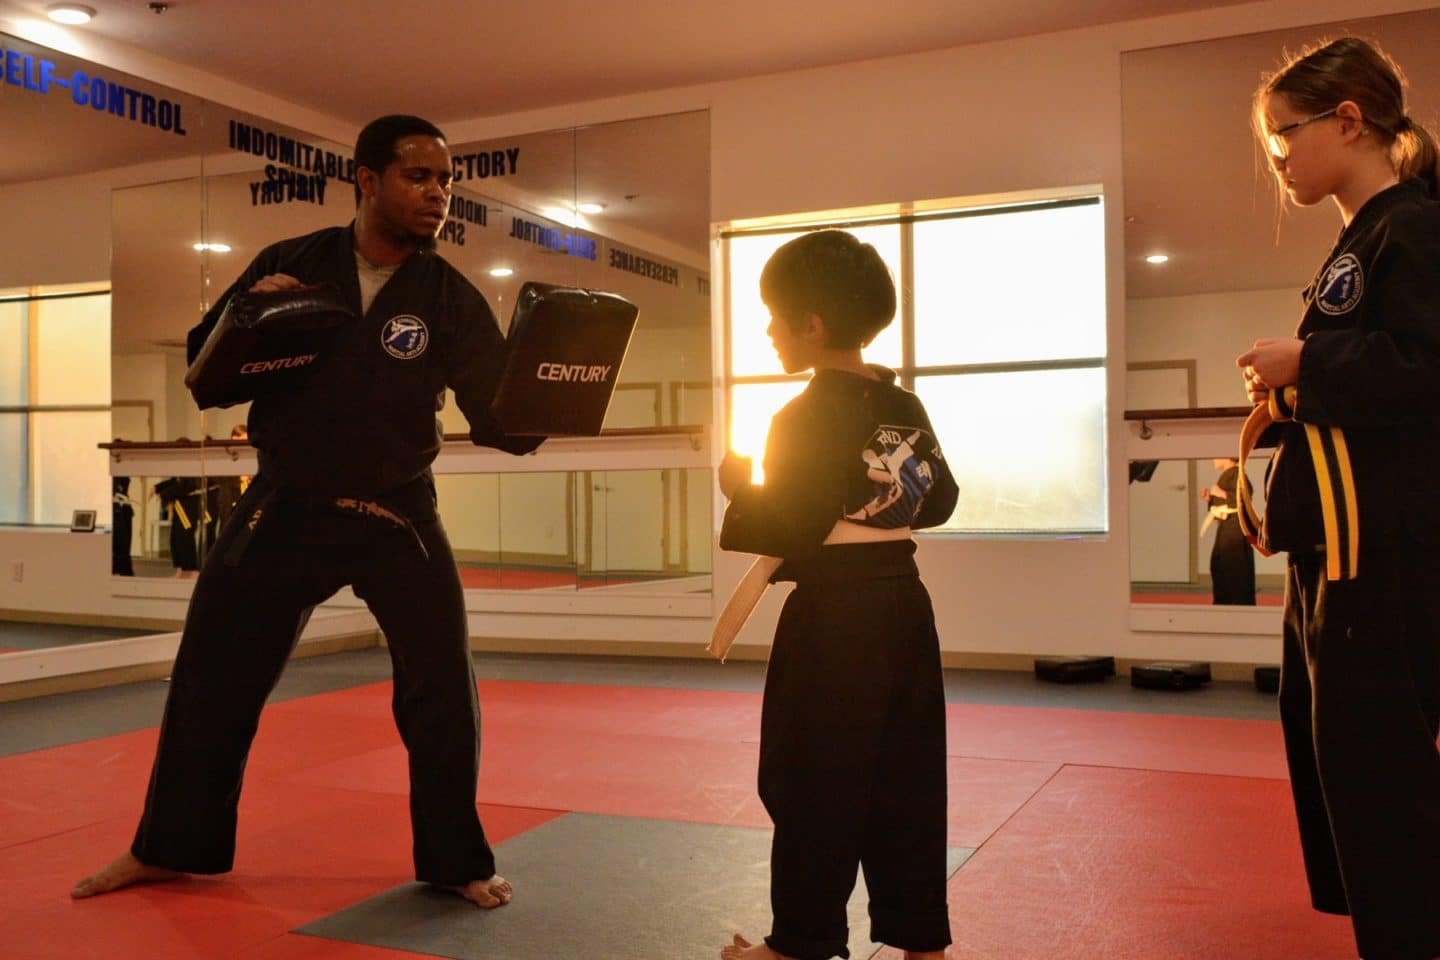 youth student practicing hitting training target pads being held by instructor